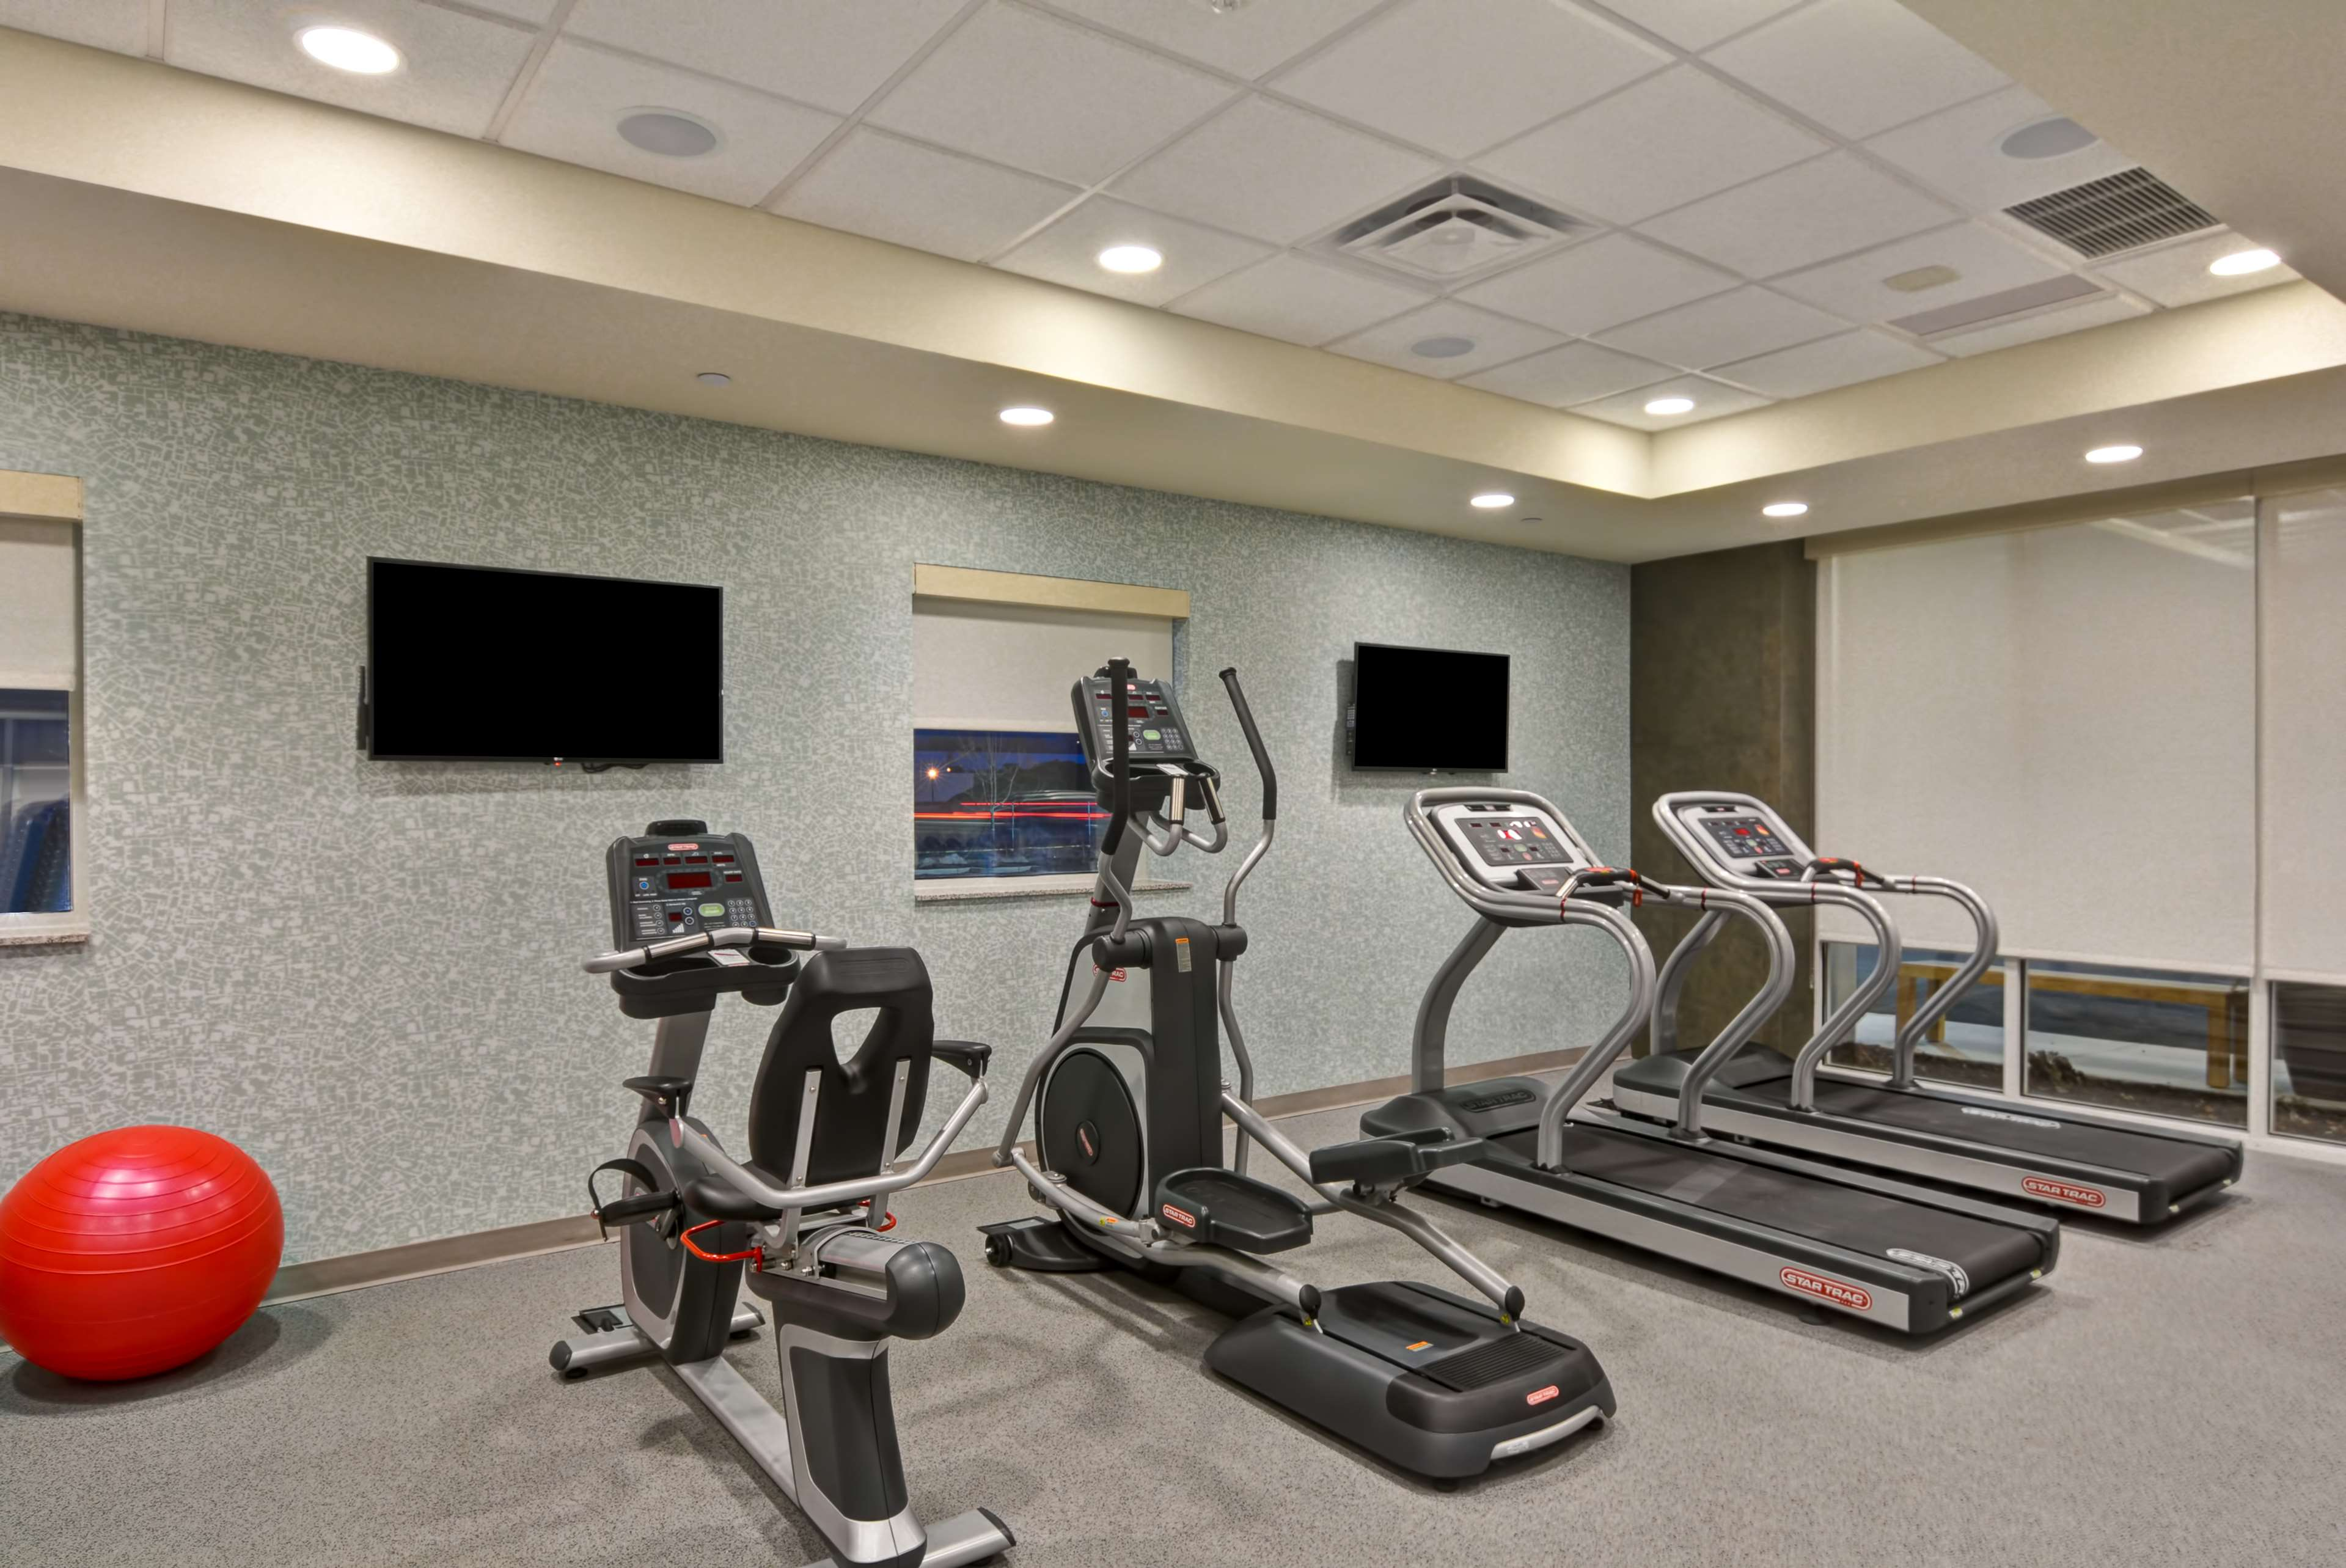 Home2 Suites by Hilton Green Bay image 11